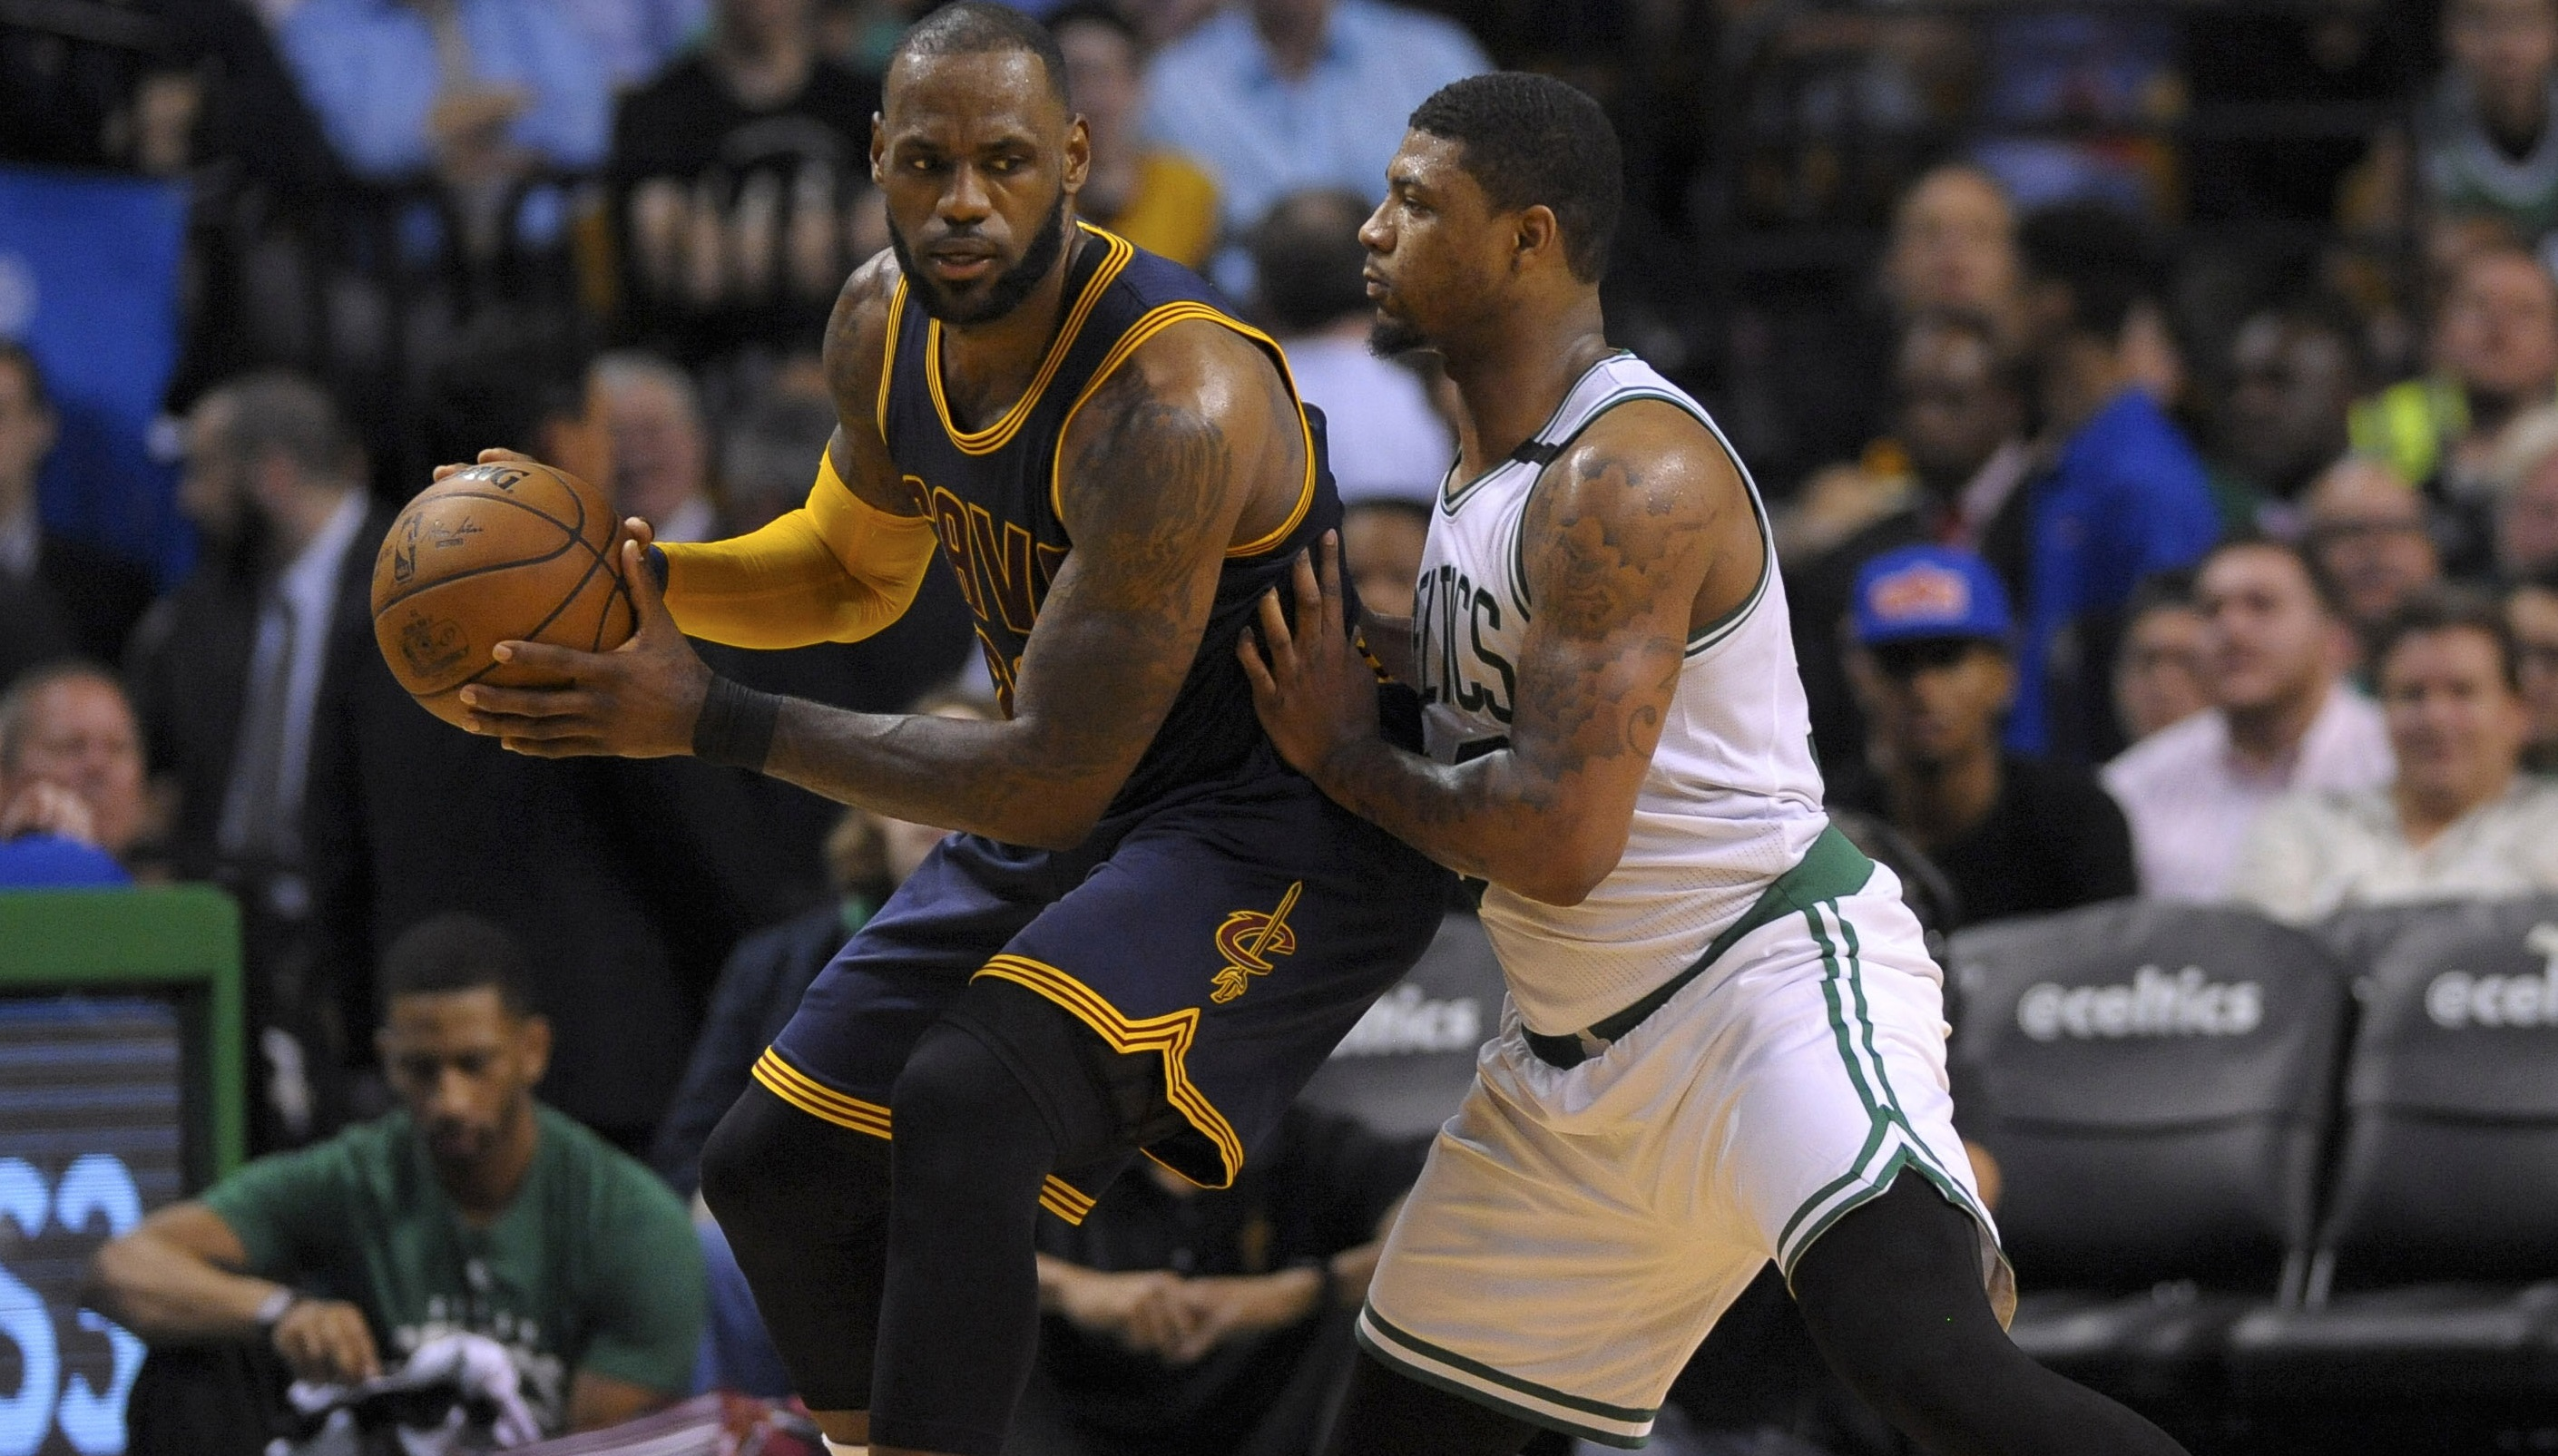 May 17, 2017; Boston, MA, USA; Cleveland Cavaliers forward LeBron James (23) controls the ball while being guarded by Boston Celtics guard Marcus Smart (36) during the first half in game one of the Eastern conference finals of the NBA Playoffs at TD Garden. Mandatory Credit: Bob DeChiara-USA TODAY Sports